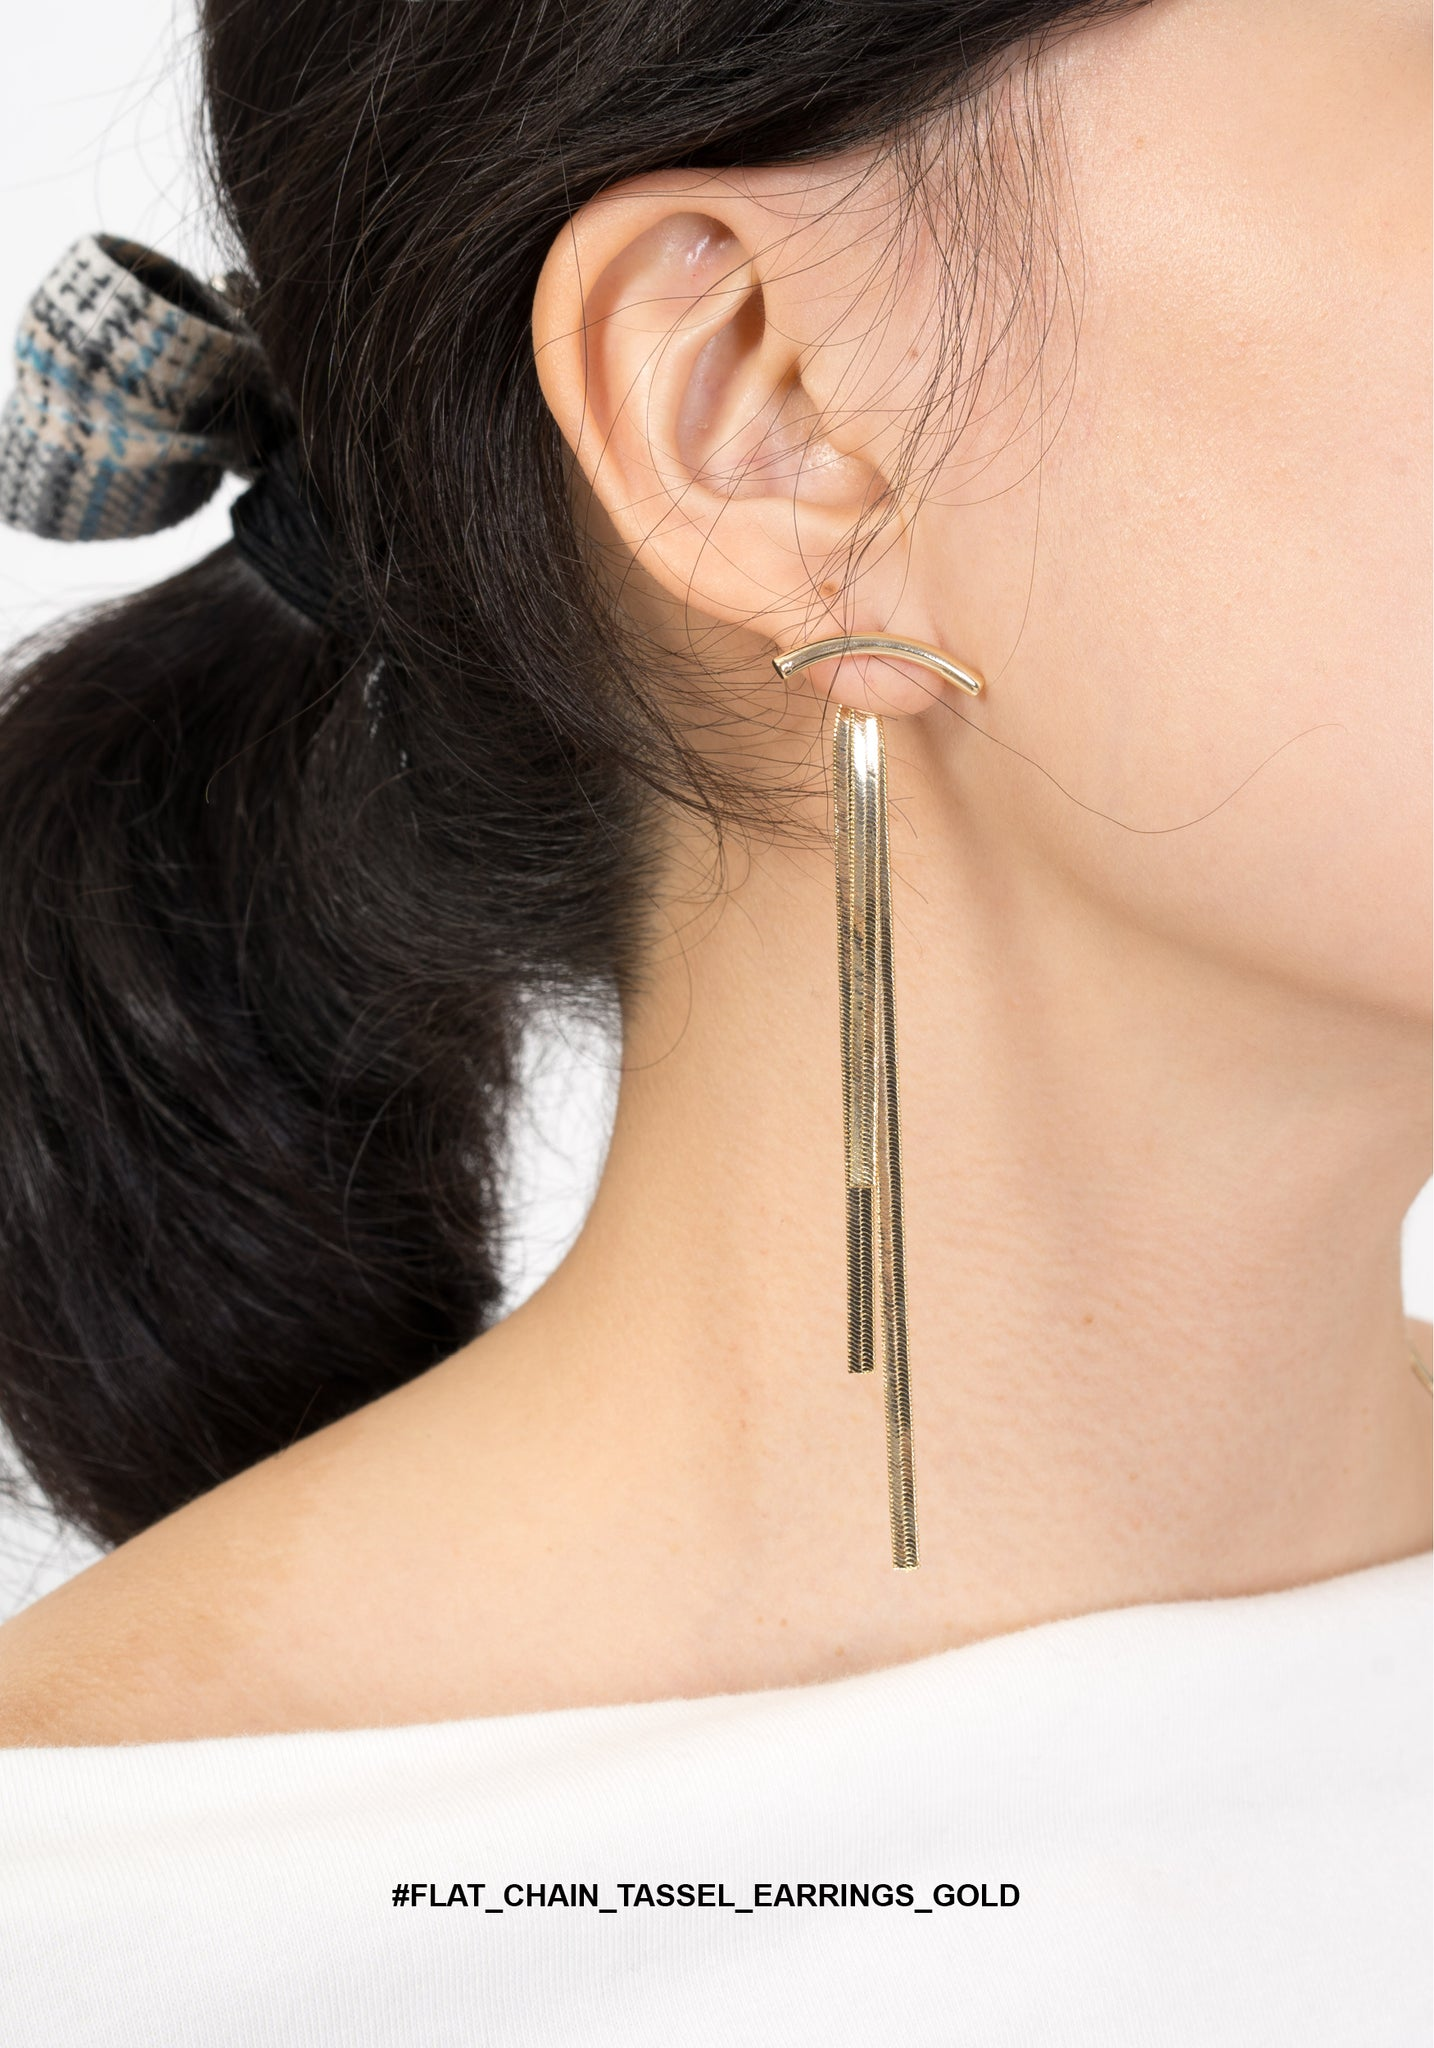 Flat Chain Tassel Earrings Gold - whoami